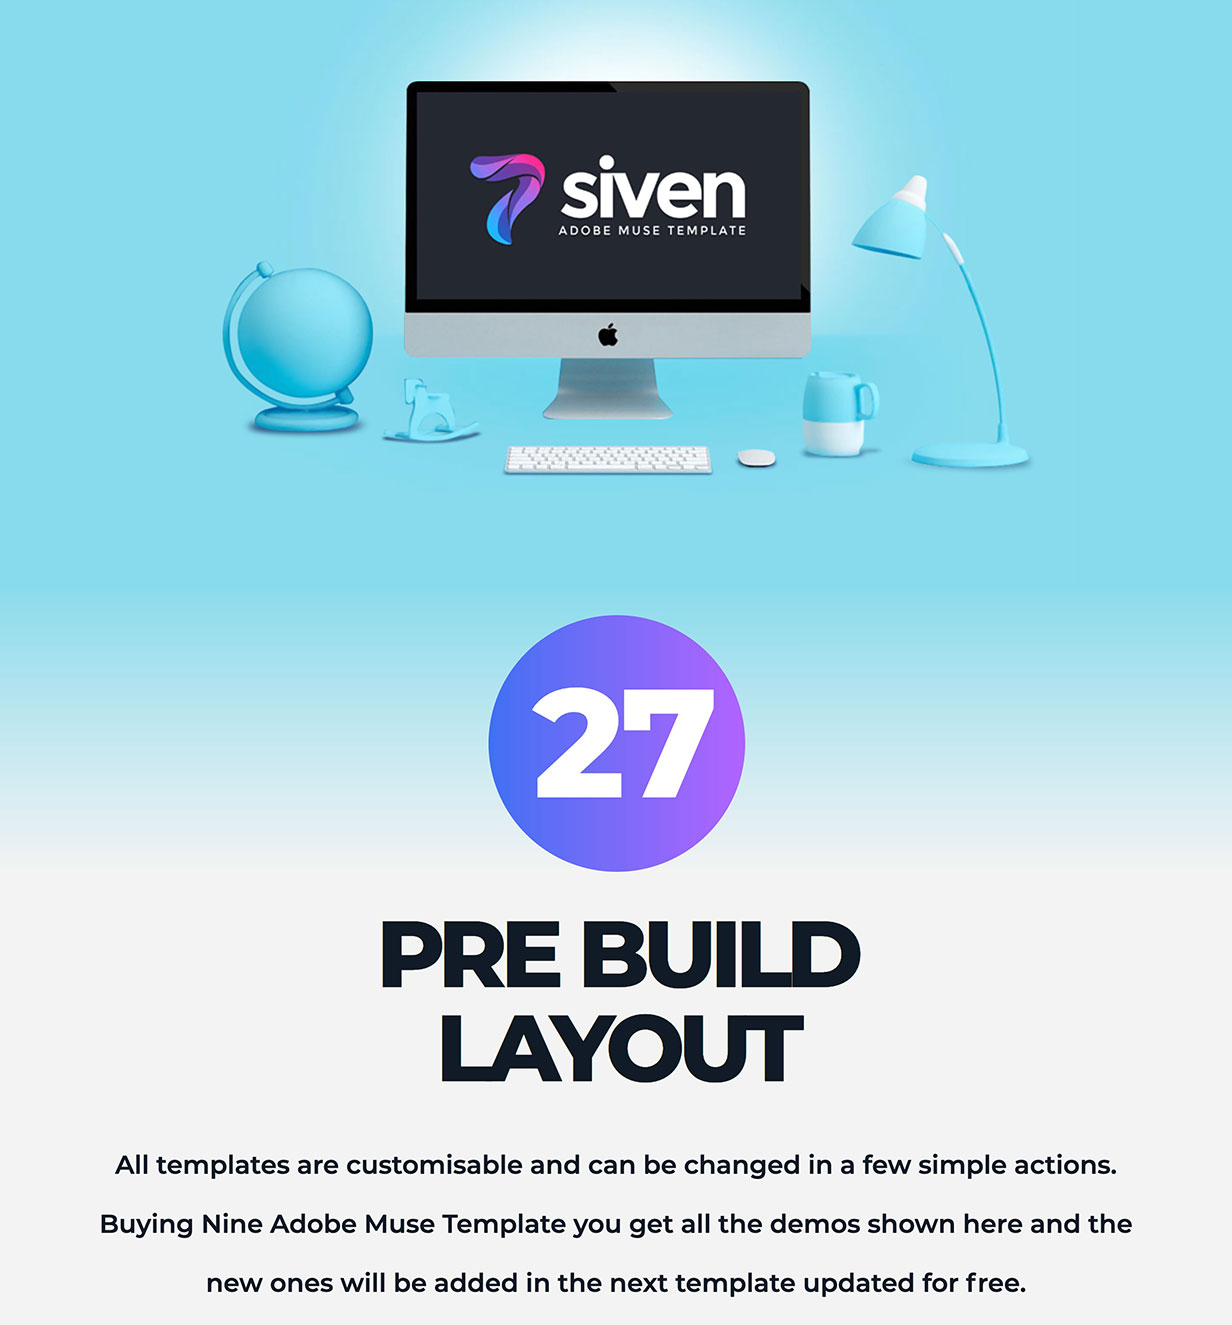 Siven - Adobe Muse Template - 1